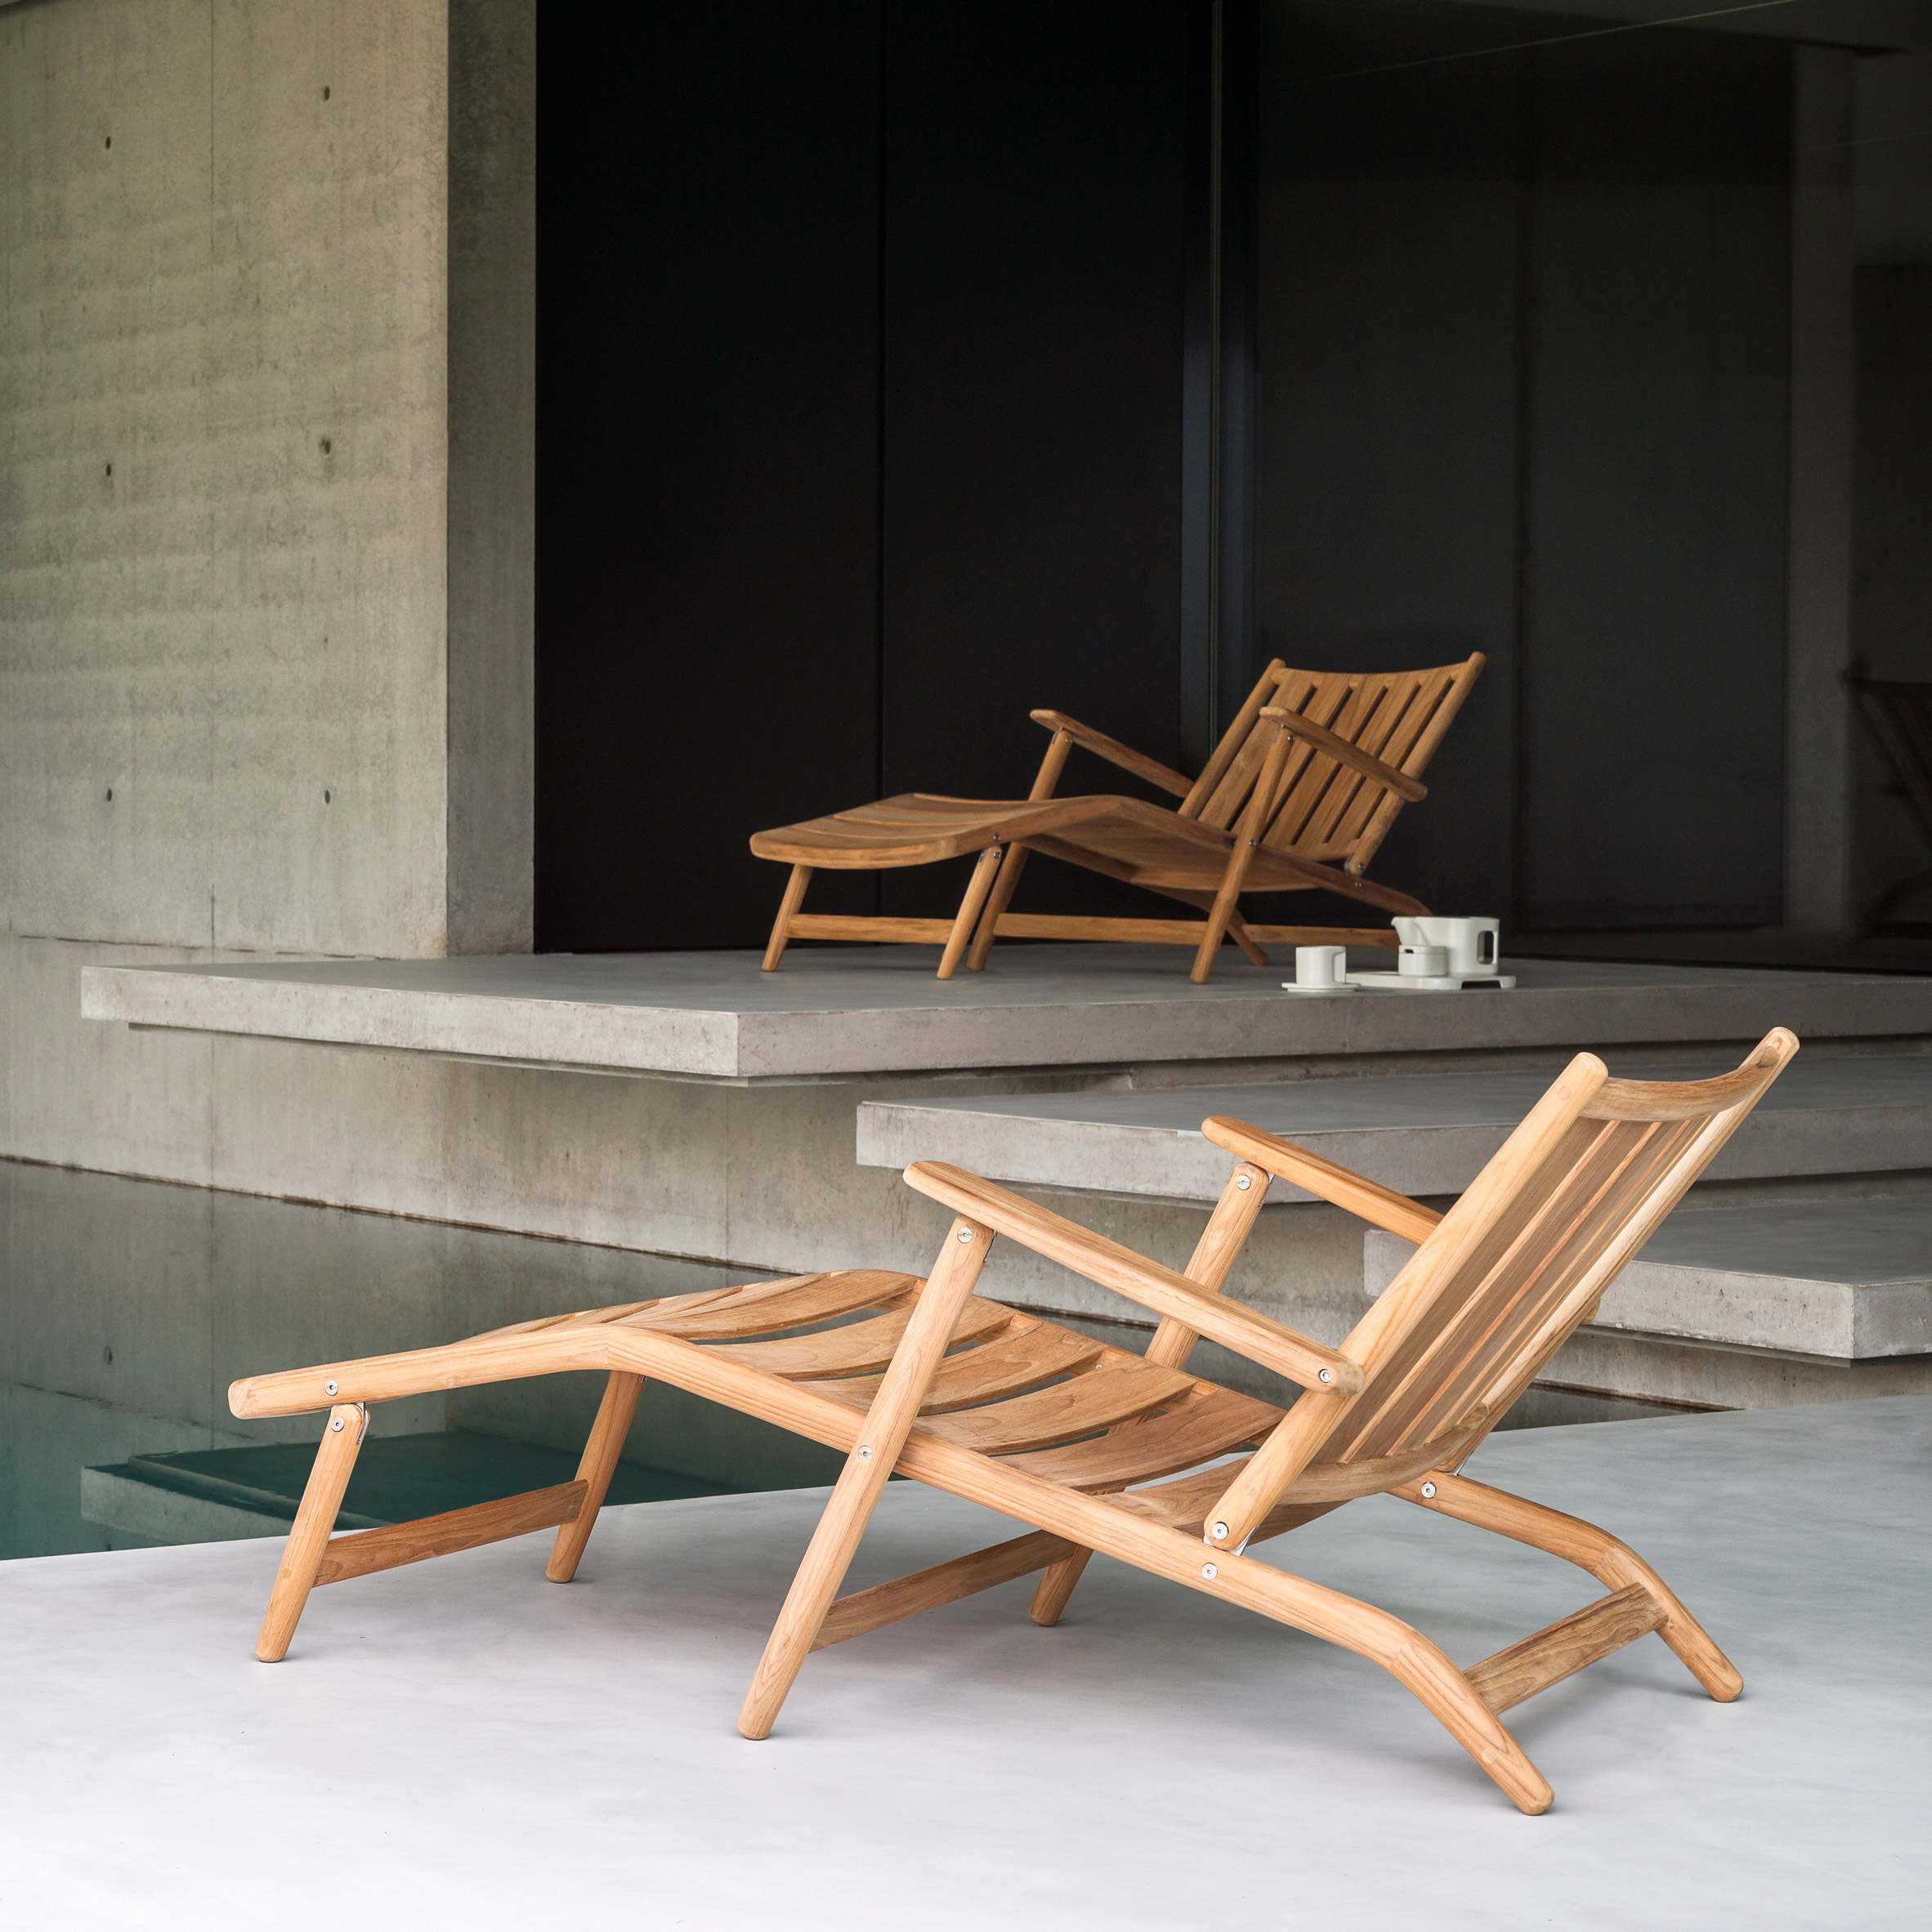 Levante relaxing collection by Piero Lissoni for Roda